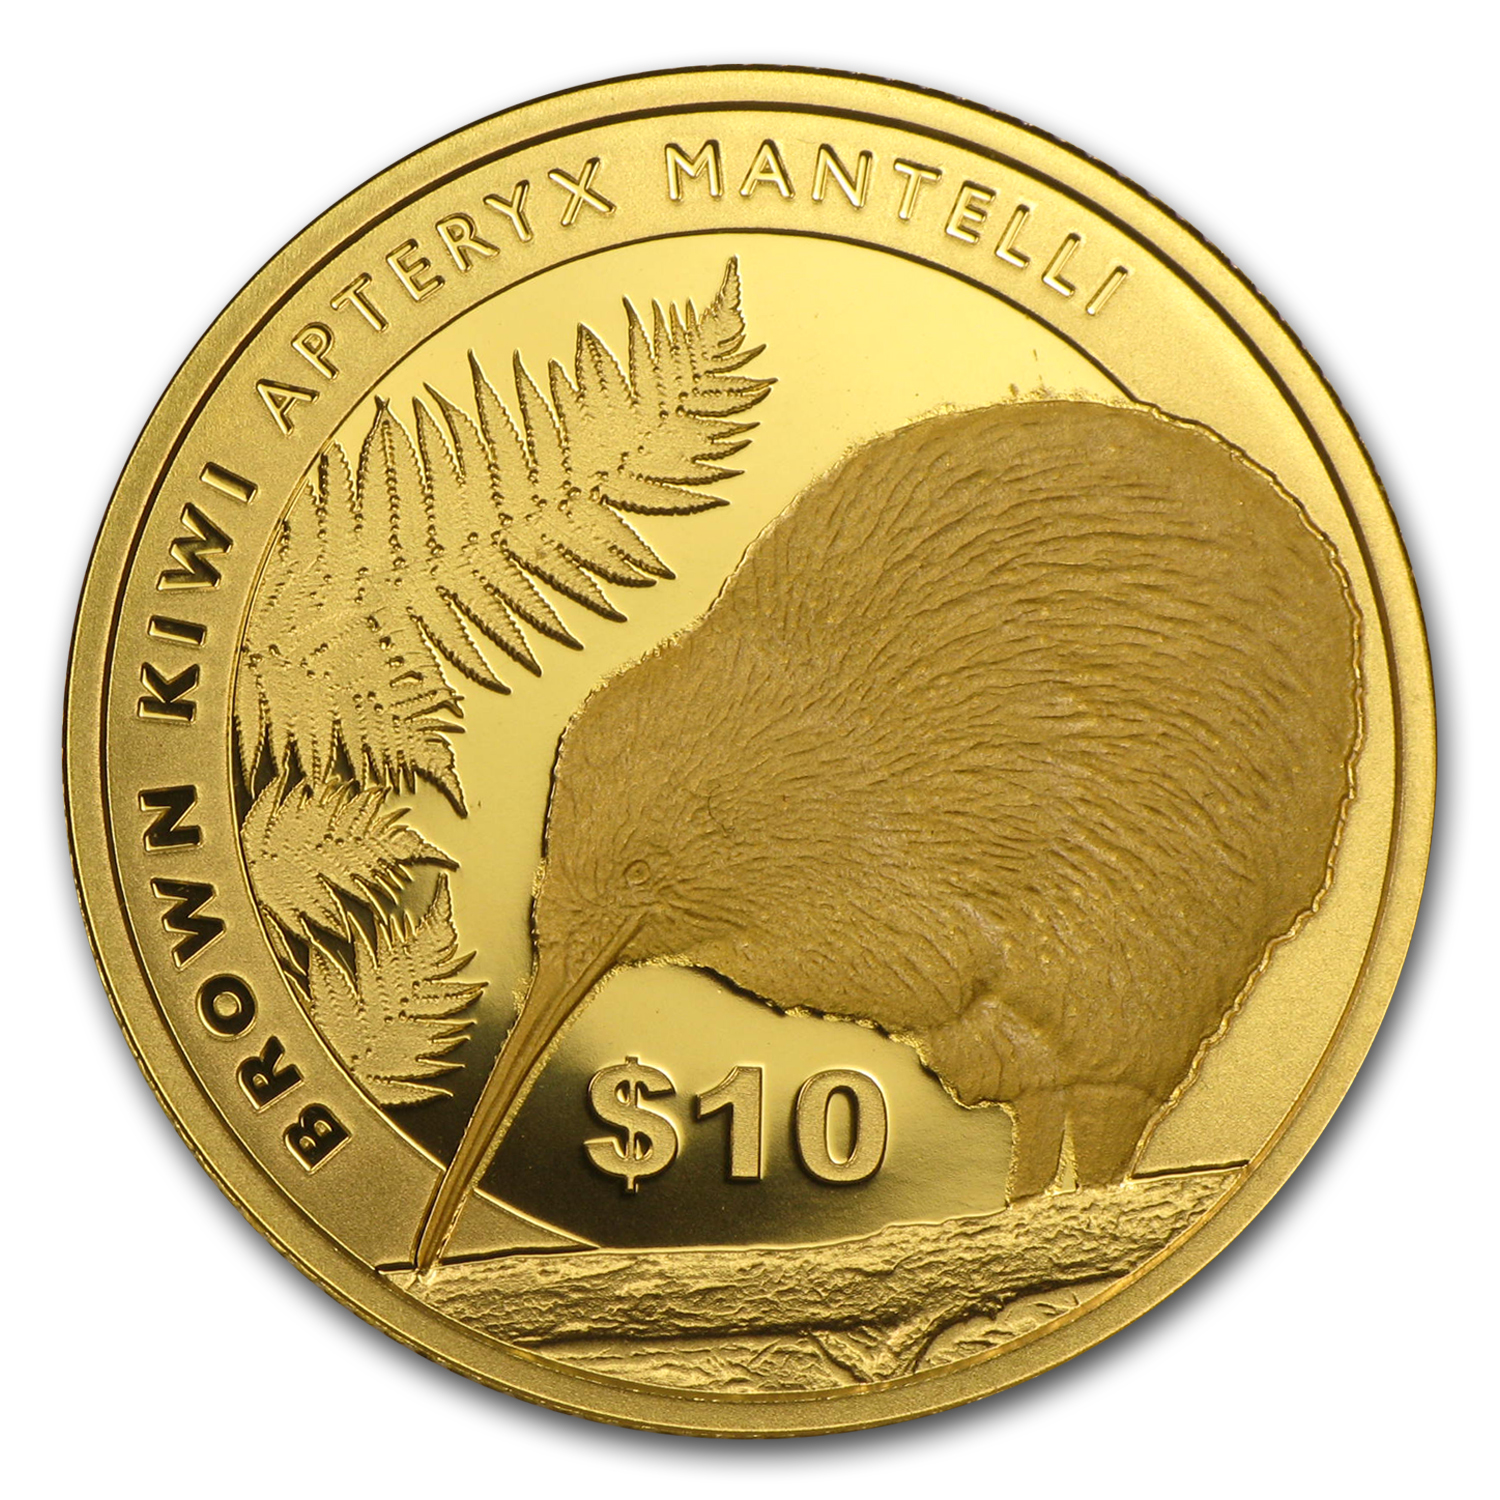 2015 New Zealand 1/4 oz Proof Gold $10 Brown Kiwi